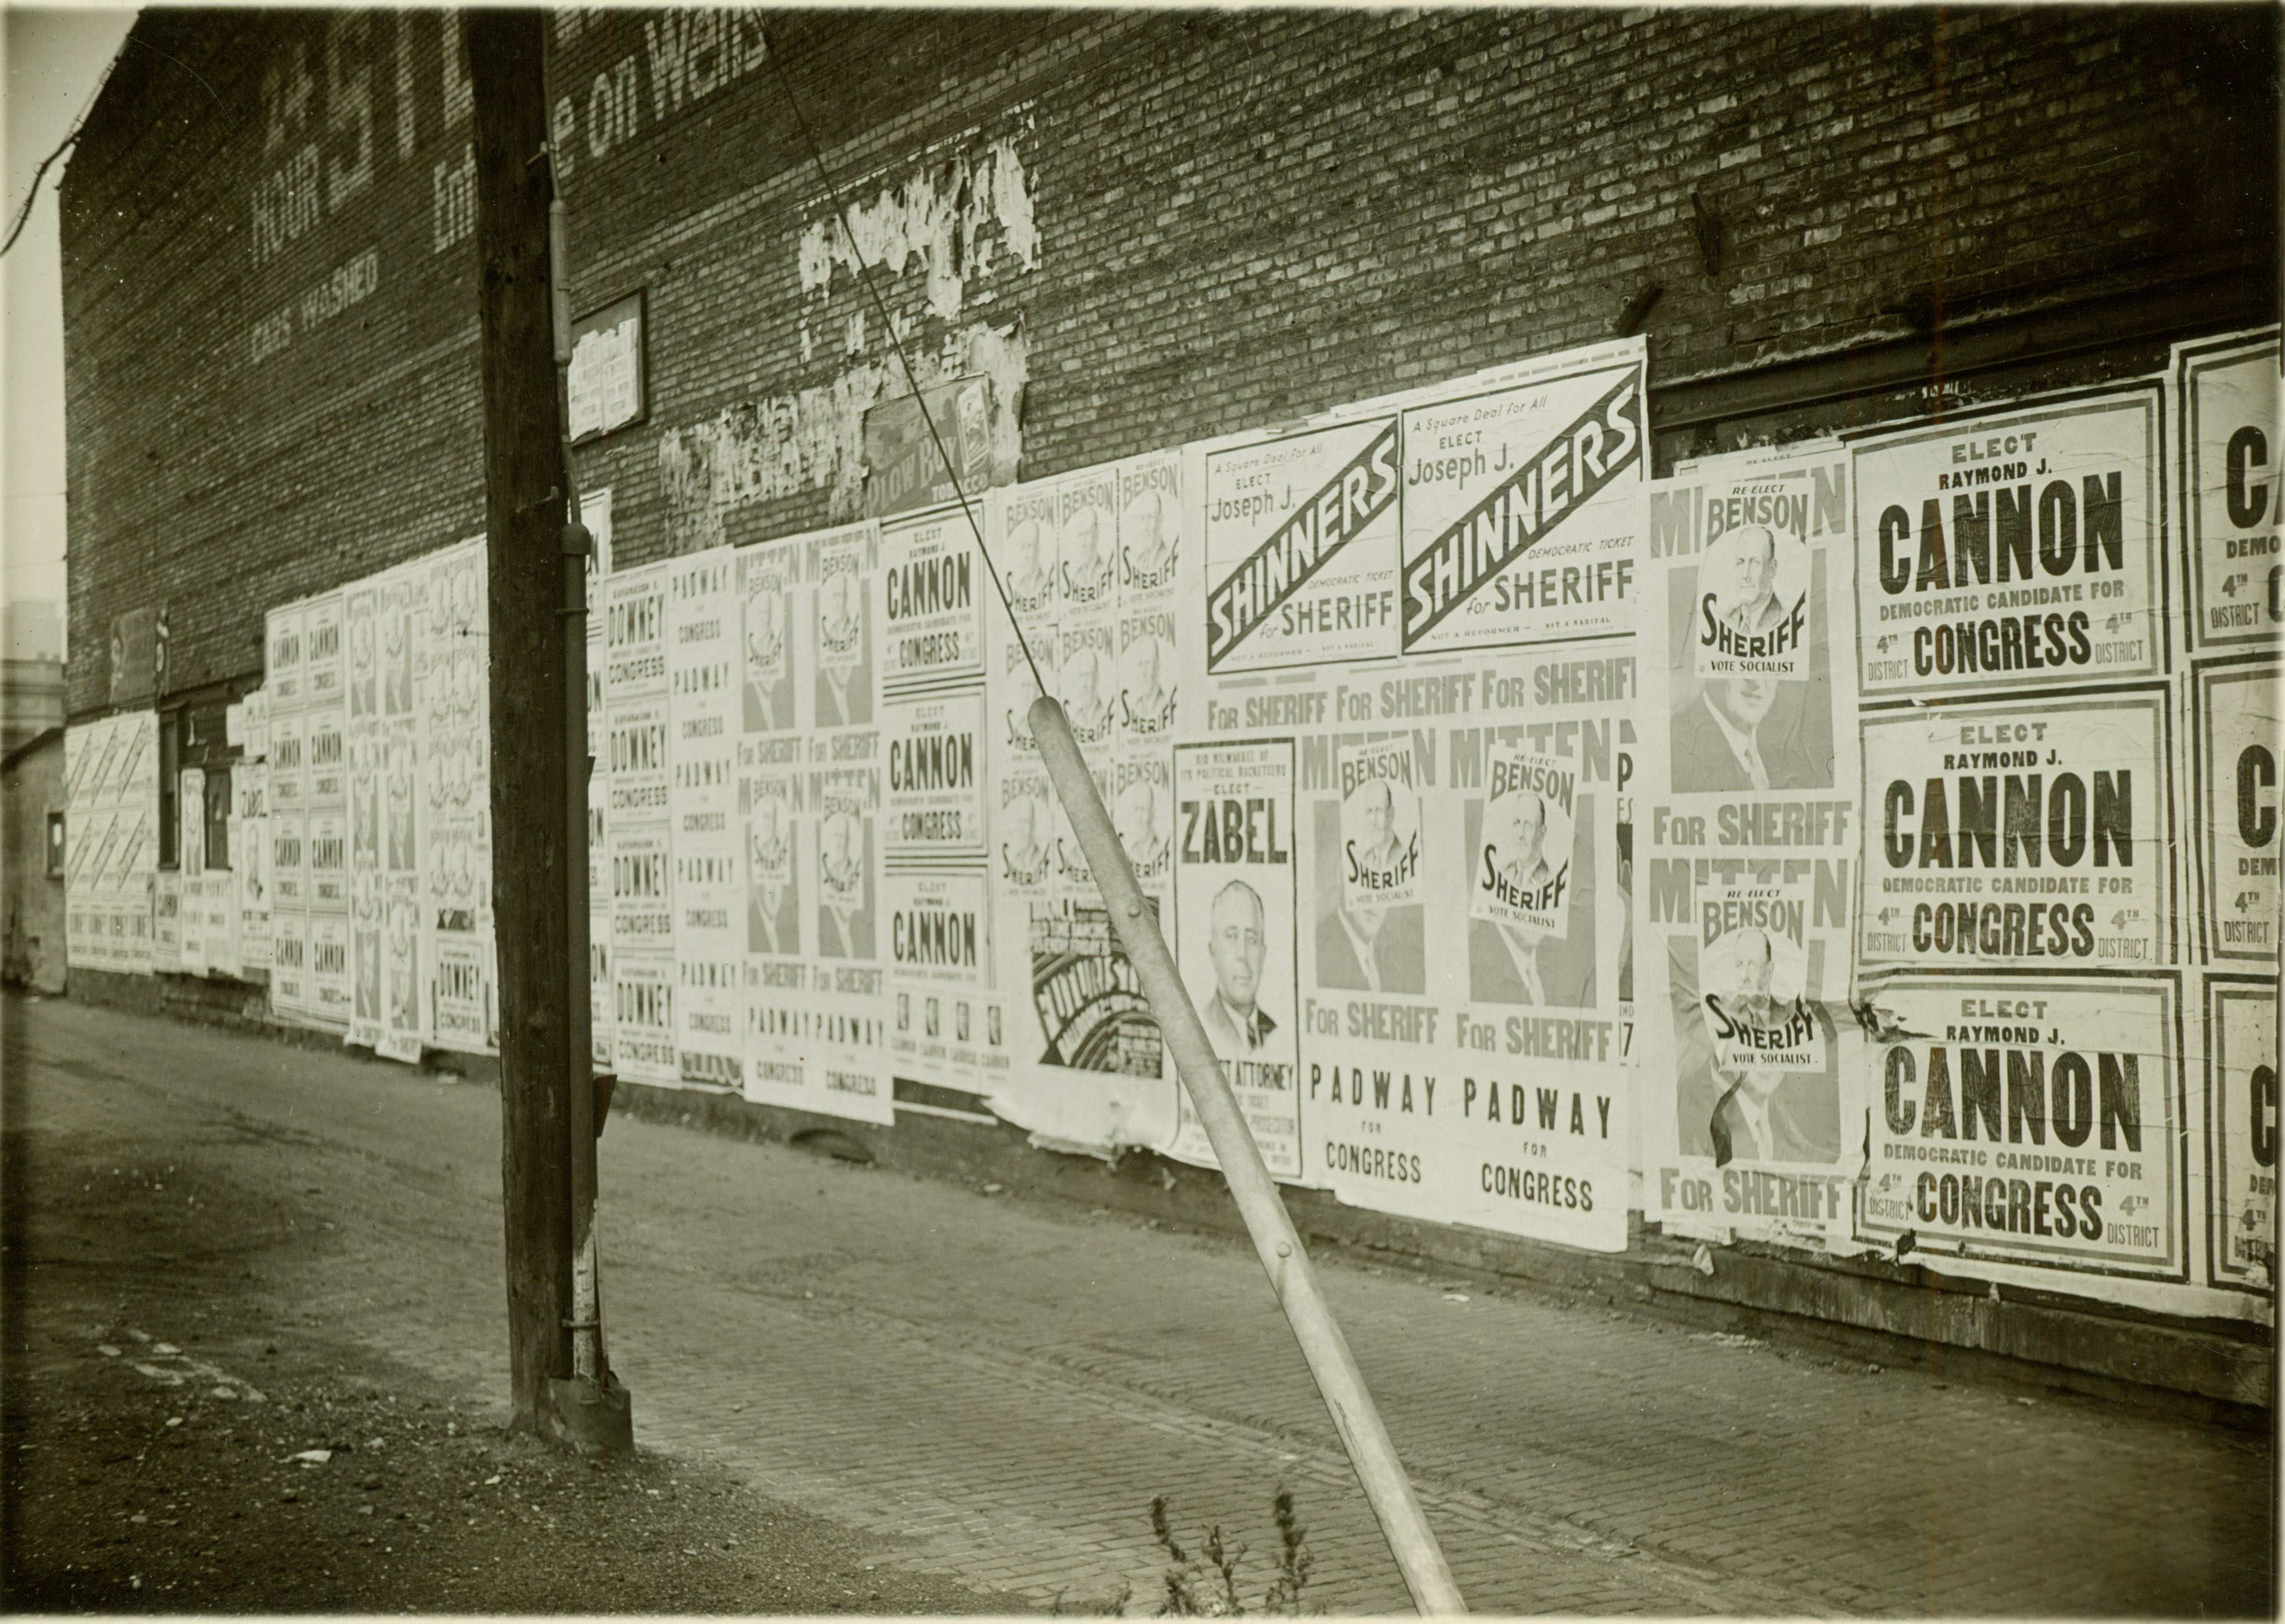 <table class=&quot;lightbox&quot;><tr><td colspan=2 class=&quot;lightbox-title&quot;>Political Posters in Milwaukee</td></tr><tr><td colspan=2 class=&quot;lightbox-caption&quot;>Campaign posters cover this brick wall on Wells Street in 1932. Candidates include Benson for Sheriff, Joseph Shinners for Sheriff, Raymond Cannon for Congress, and Zabel for District Attorney.</td></tr><tr><td colspan=2 class=&quot;lightbox-spacer&quot;></td></tr><tr class=&quot;lightbox-detail&quot;><td class=&quot;cell-title&quot;>Source: </td><td class=&quot;cell-value&quot;>From the Historic Photo Collection of the Milwaukee Public Library. Reprinted with permission. <br /><a href=&quot;http://content.mpl.org/cdm/singleitem/collection/HstoricPho/id/8987/rec/5&quot; target=&quot;_blank&quot;>Milwaukee Public Library</a></td></tr><tr class=&quot;filler-row&quot;><td colspan=2>&nbsp;</td></tr></table>